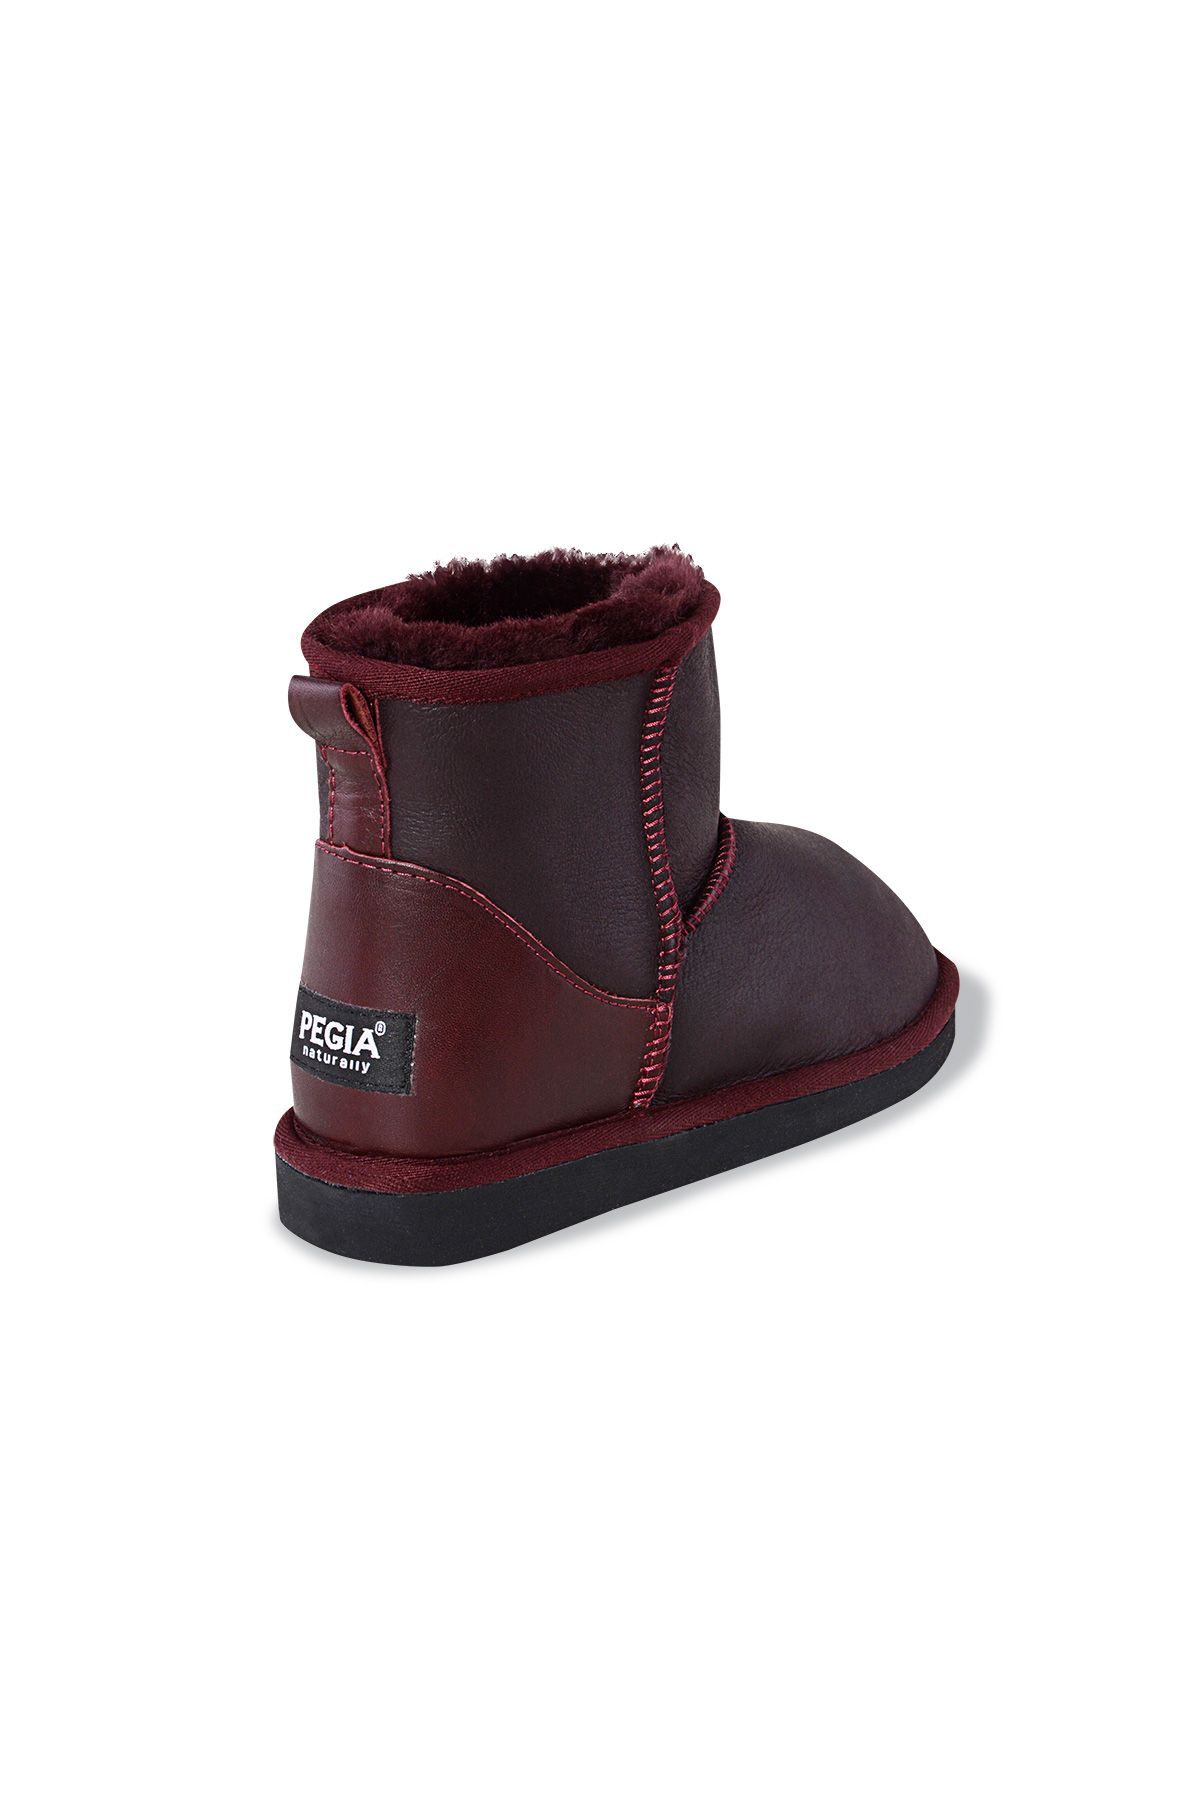 Pegia Short Women Boots From Genuine Leather And Sheepskin Fur 191022 Claret red